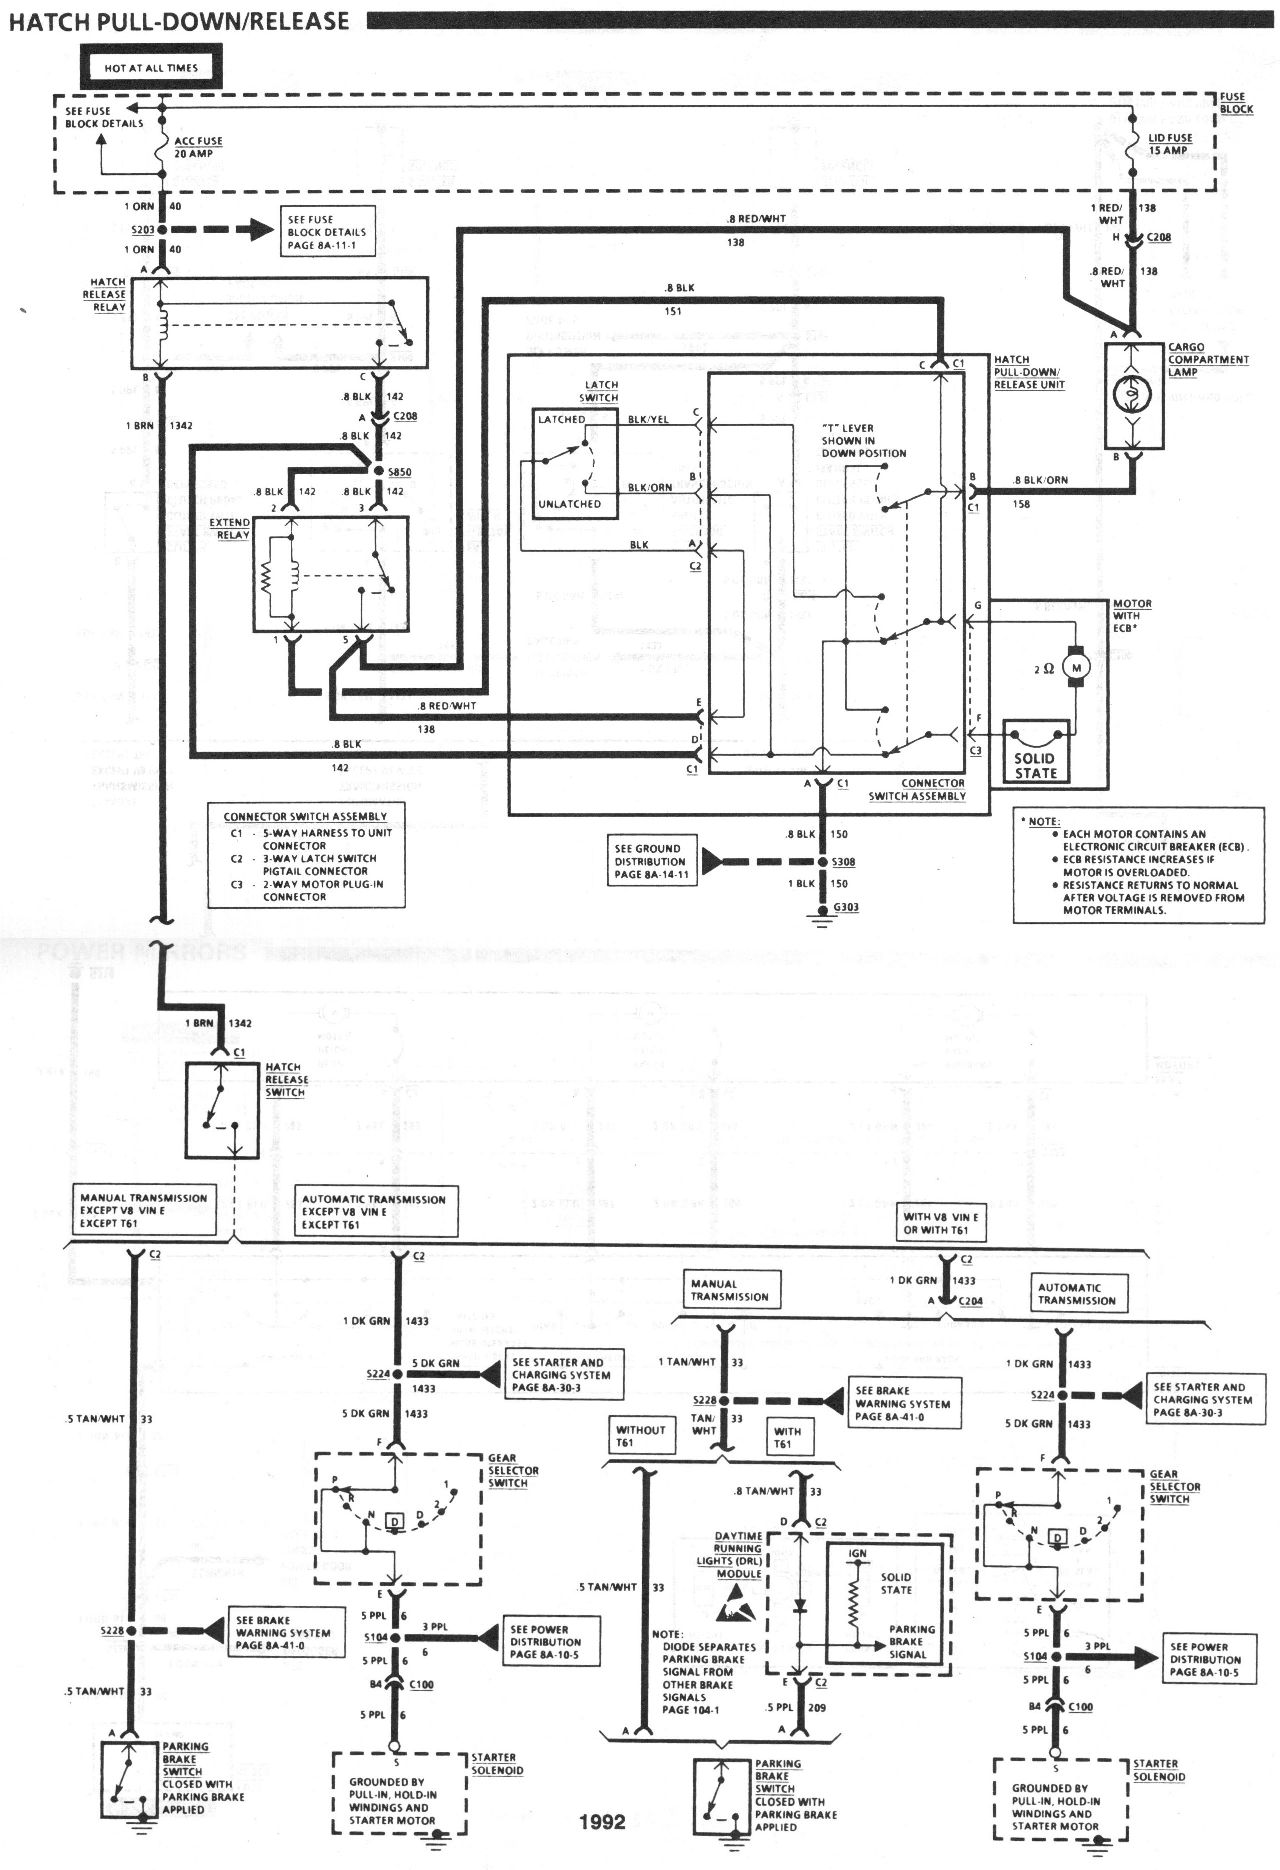 diagram_1992_hatch_pull_down_release  Camaro Fuse Panel Diagram on camry fuse diagram, buick fuse diagram, dakota fuse diagram, rav4 fuse diagram, dodge fuse diagram, colorado fuse diagram, suburban fuse diagram, miata fuse diagram, focus fuse diagram, impala fuse diagram, transit connect fuse diagram, altima fuse diagram, automotive fuse diagram, acadia fuse diagram, solstice fuse diagram, liberty fuse diagram, ranger fuse diagram, jaguar fuse diagram, s10 fuse diagram, durango fuse diagram,